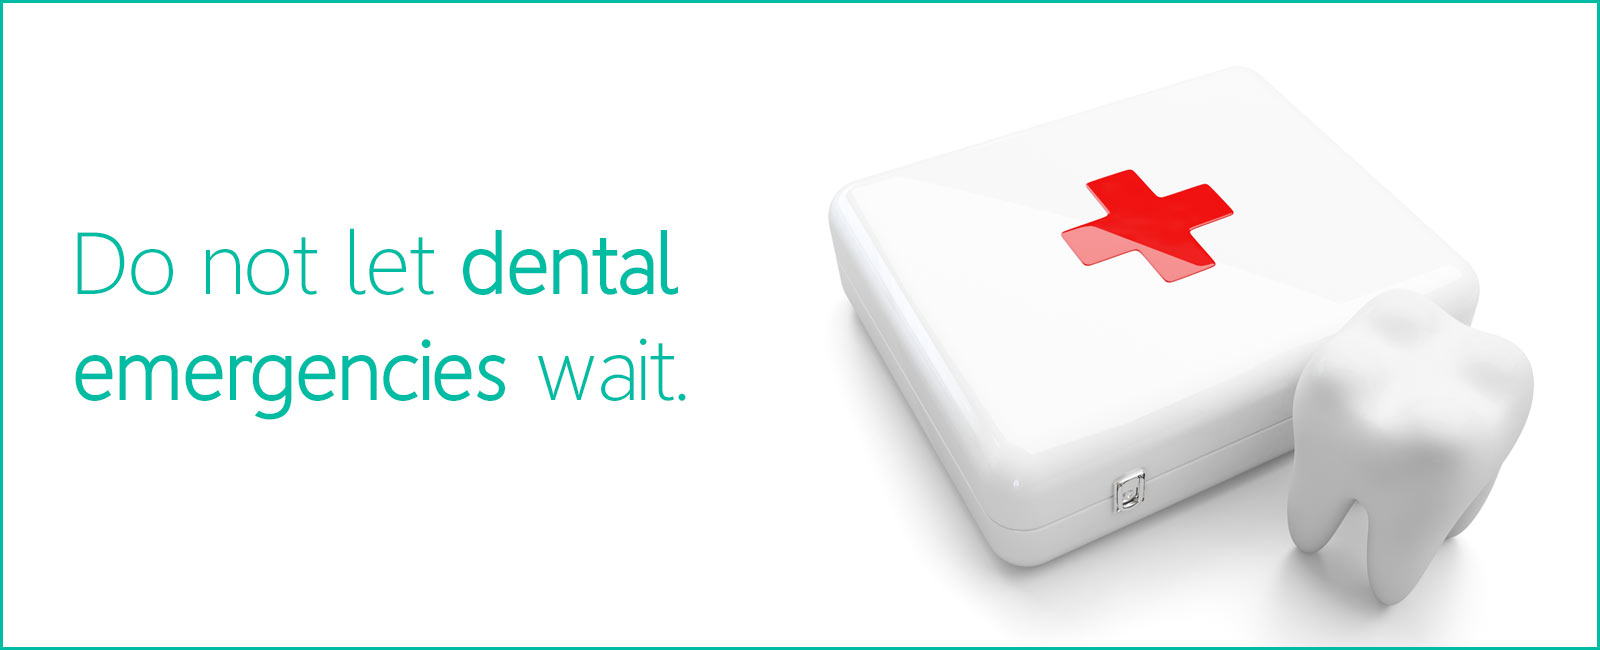 Dental emergency dentist in Toronto - St. Clair Ave